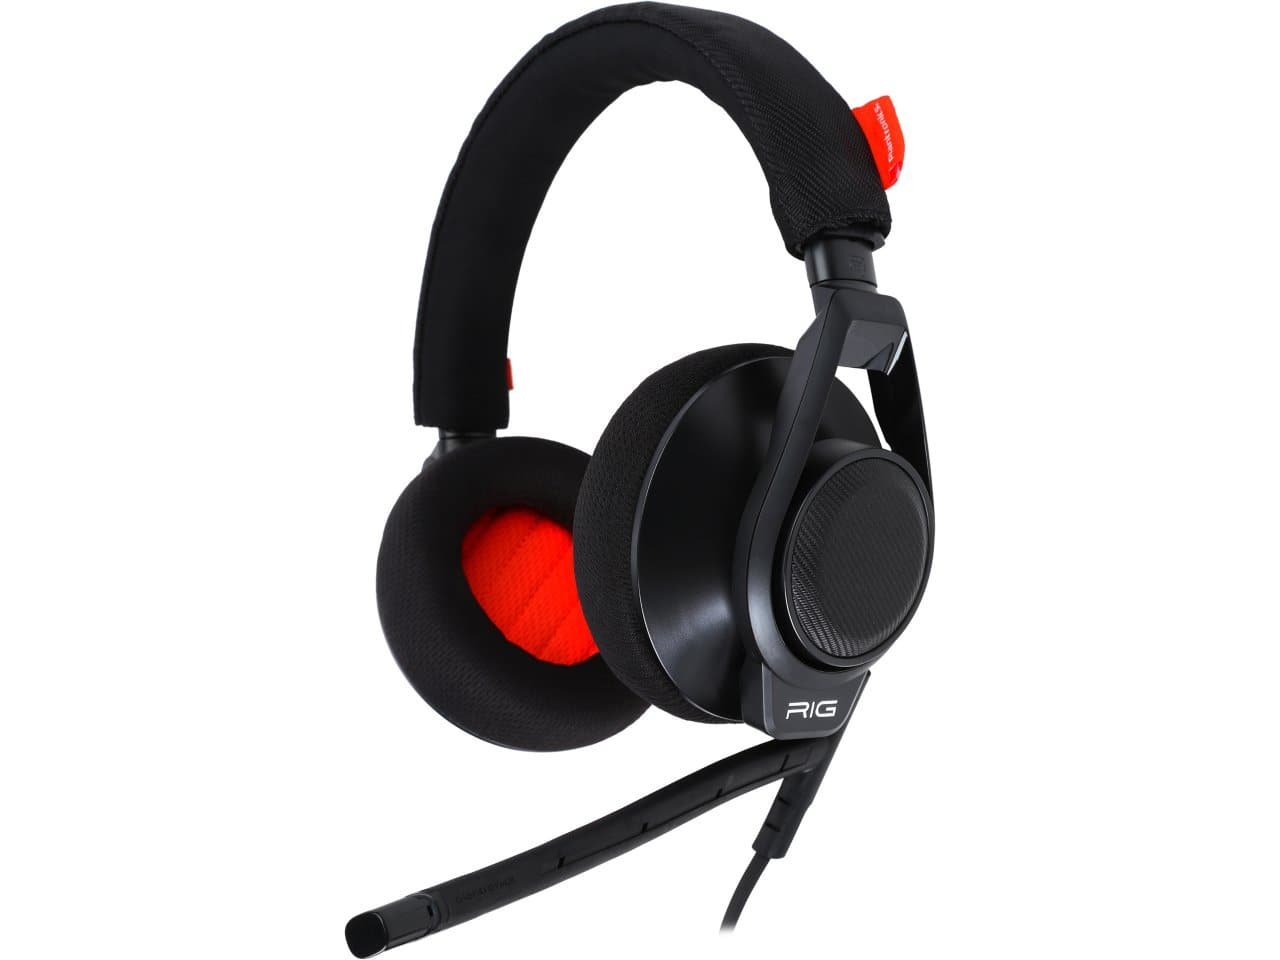 Gaming Deals: Plantronics Rig Flex 3.5mm Gaming Headset w/ Mic + Uncharted 4: A Thief's End (PS4) for $79.99, MLB The Show 16 (PS4) for $44.99 AC + S&H & More @ Newegg.com